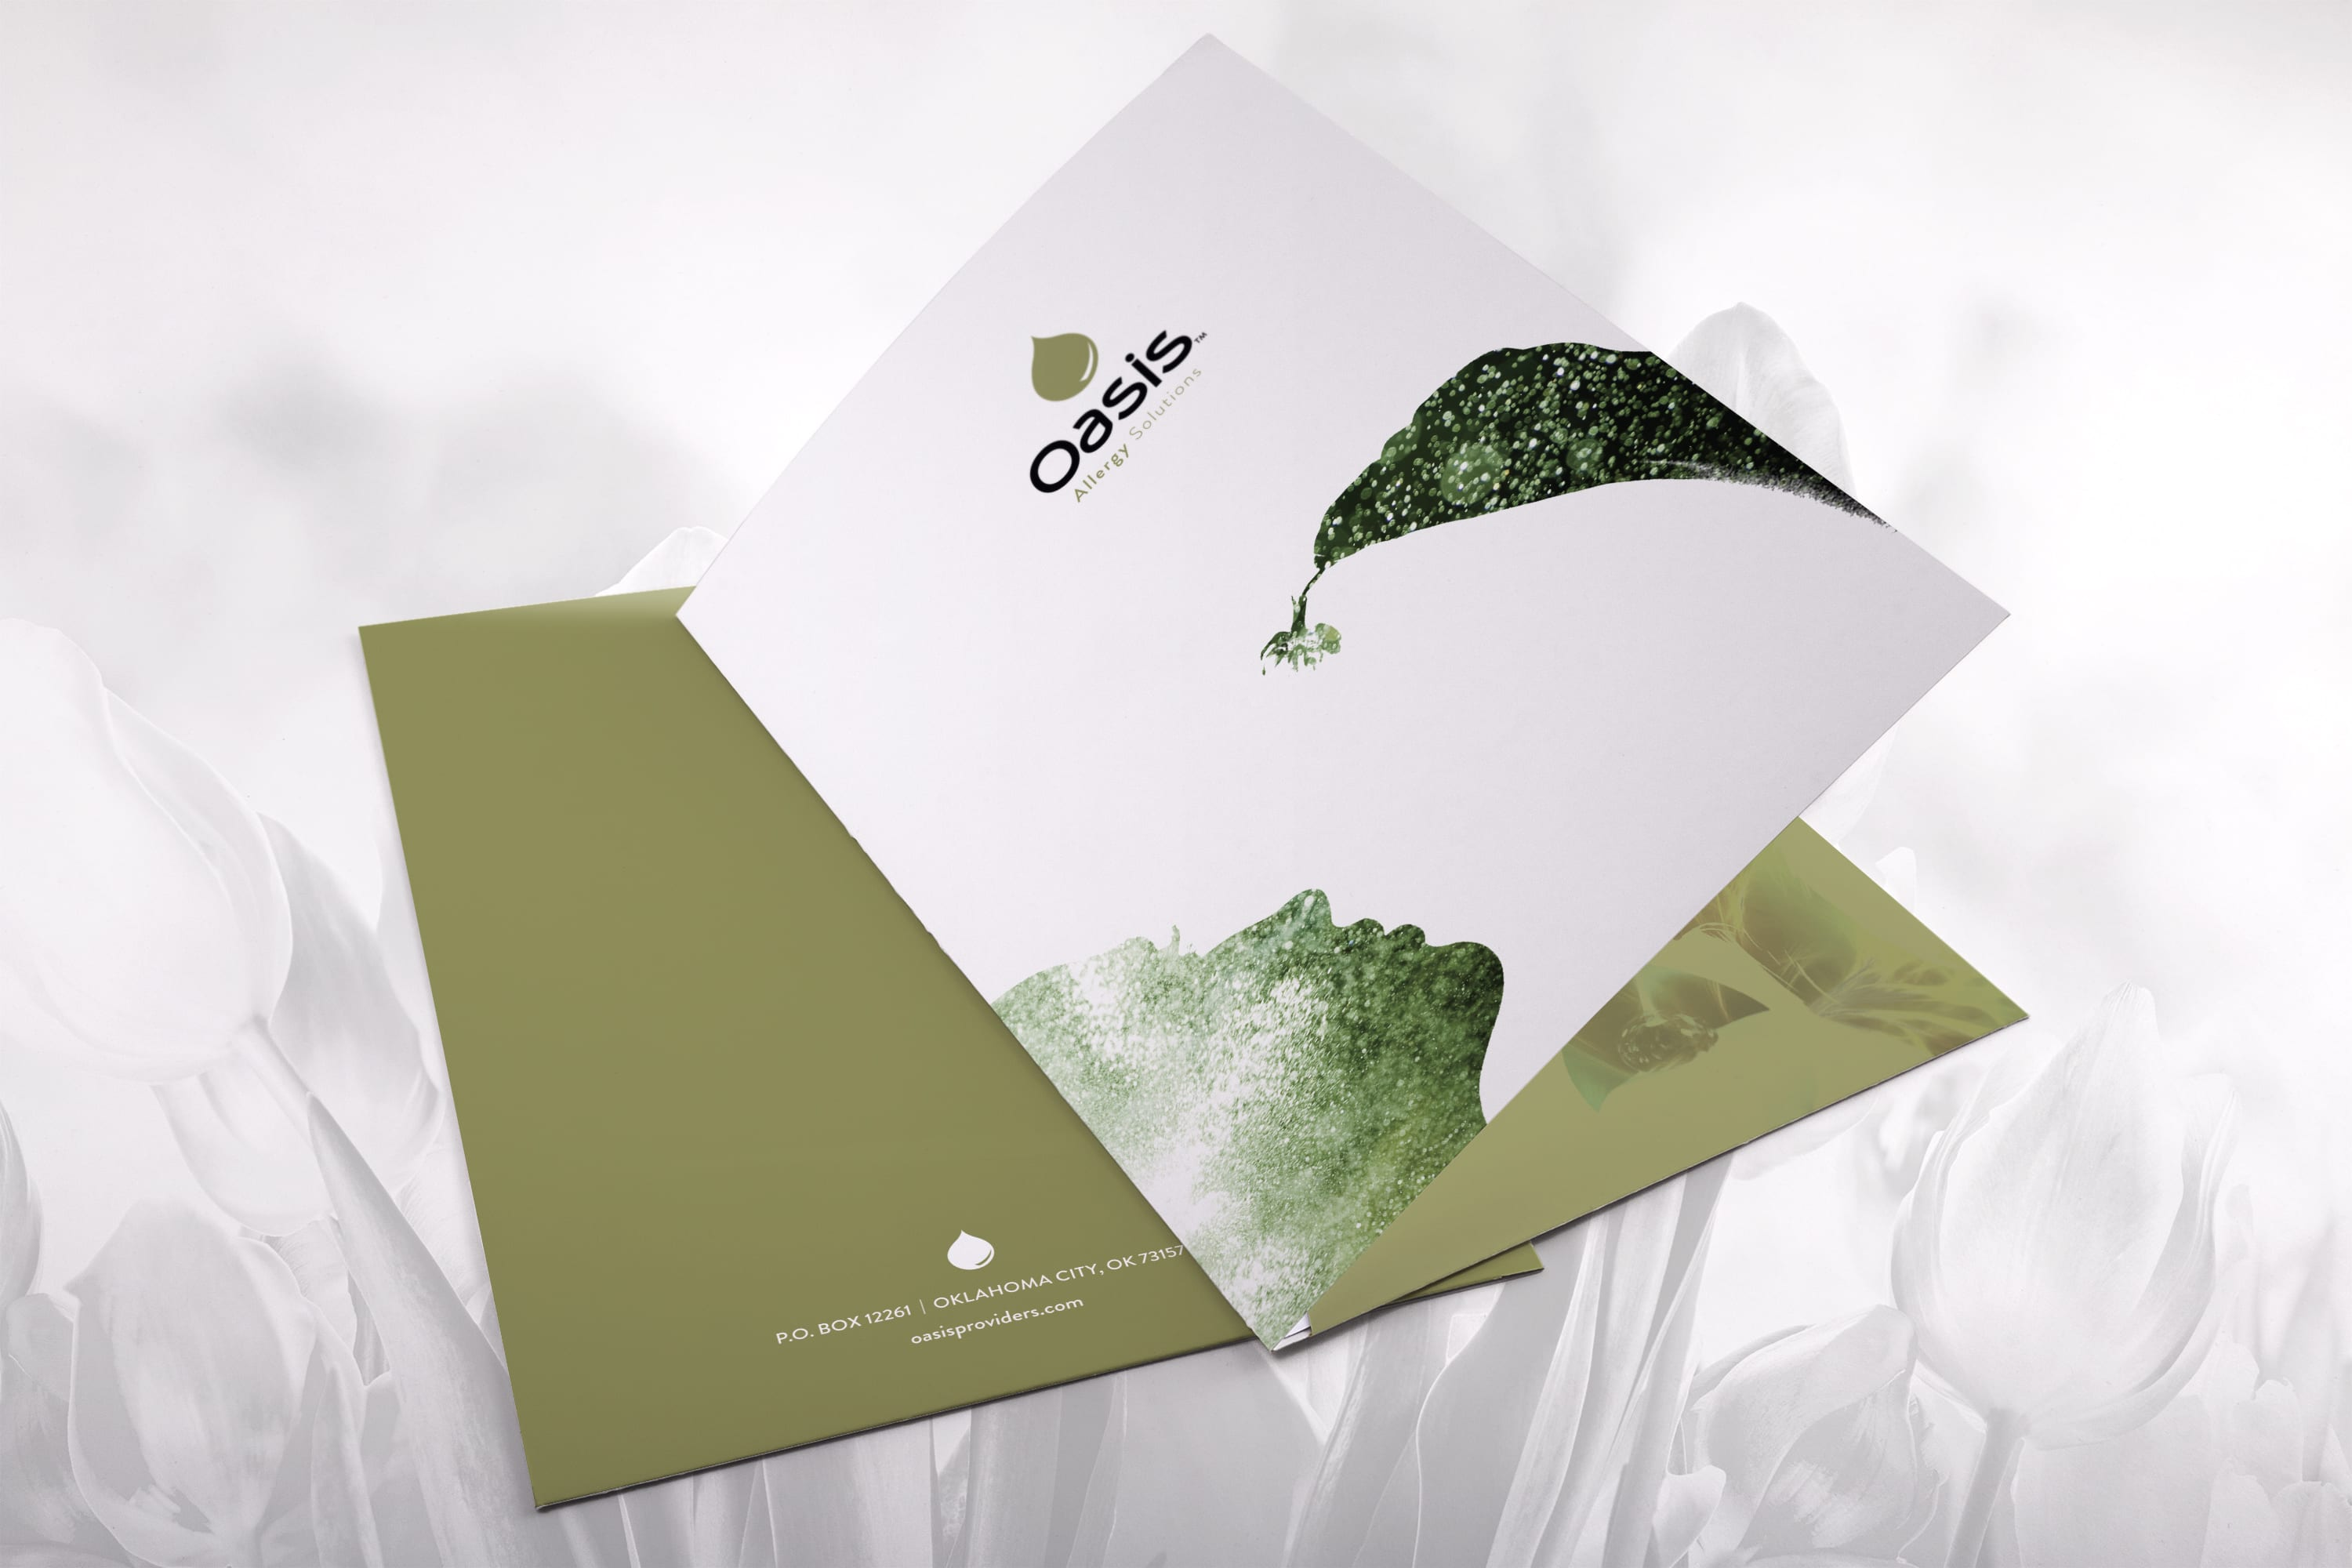 Oasis Allergy Folder Designed by Liquid Media